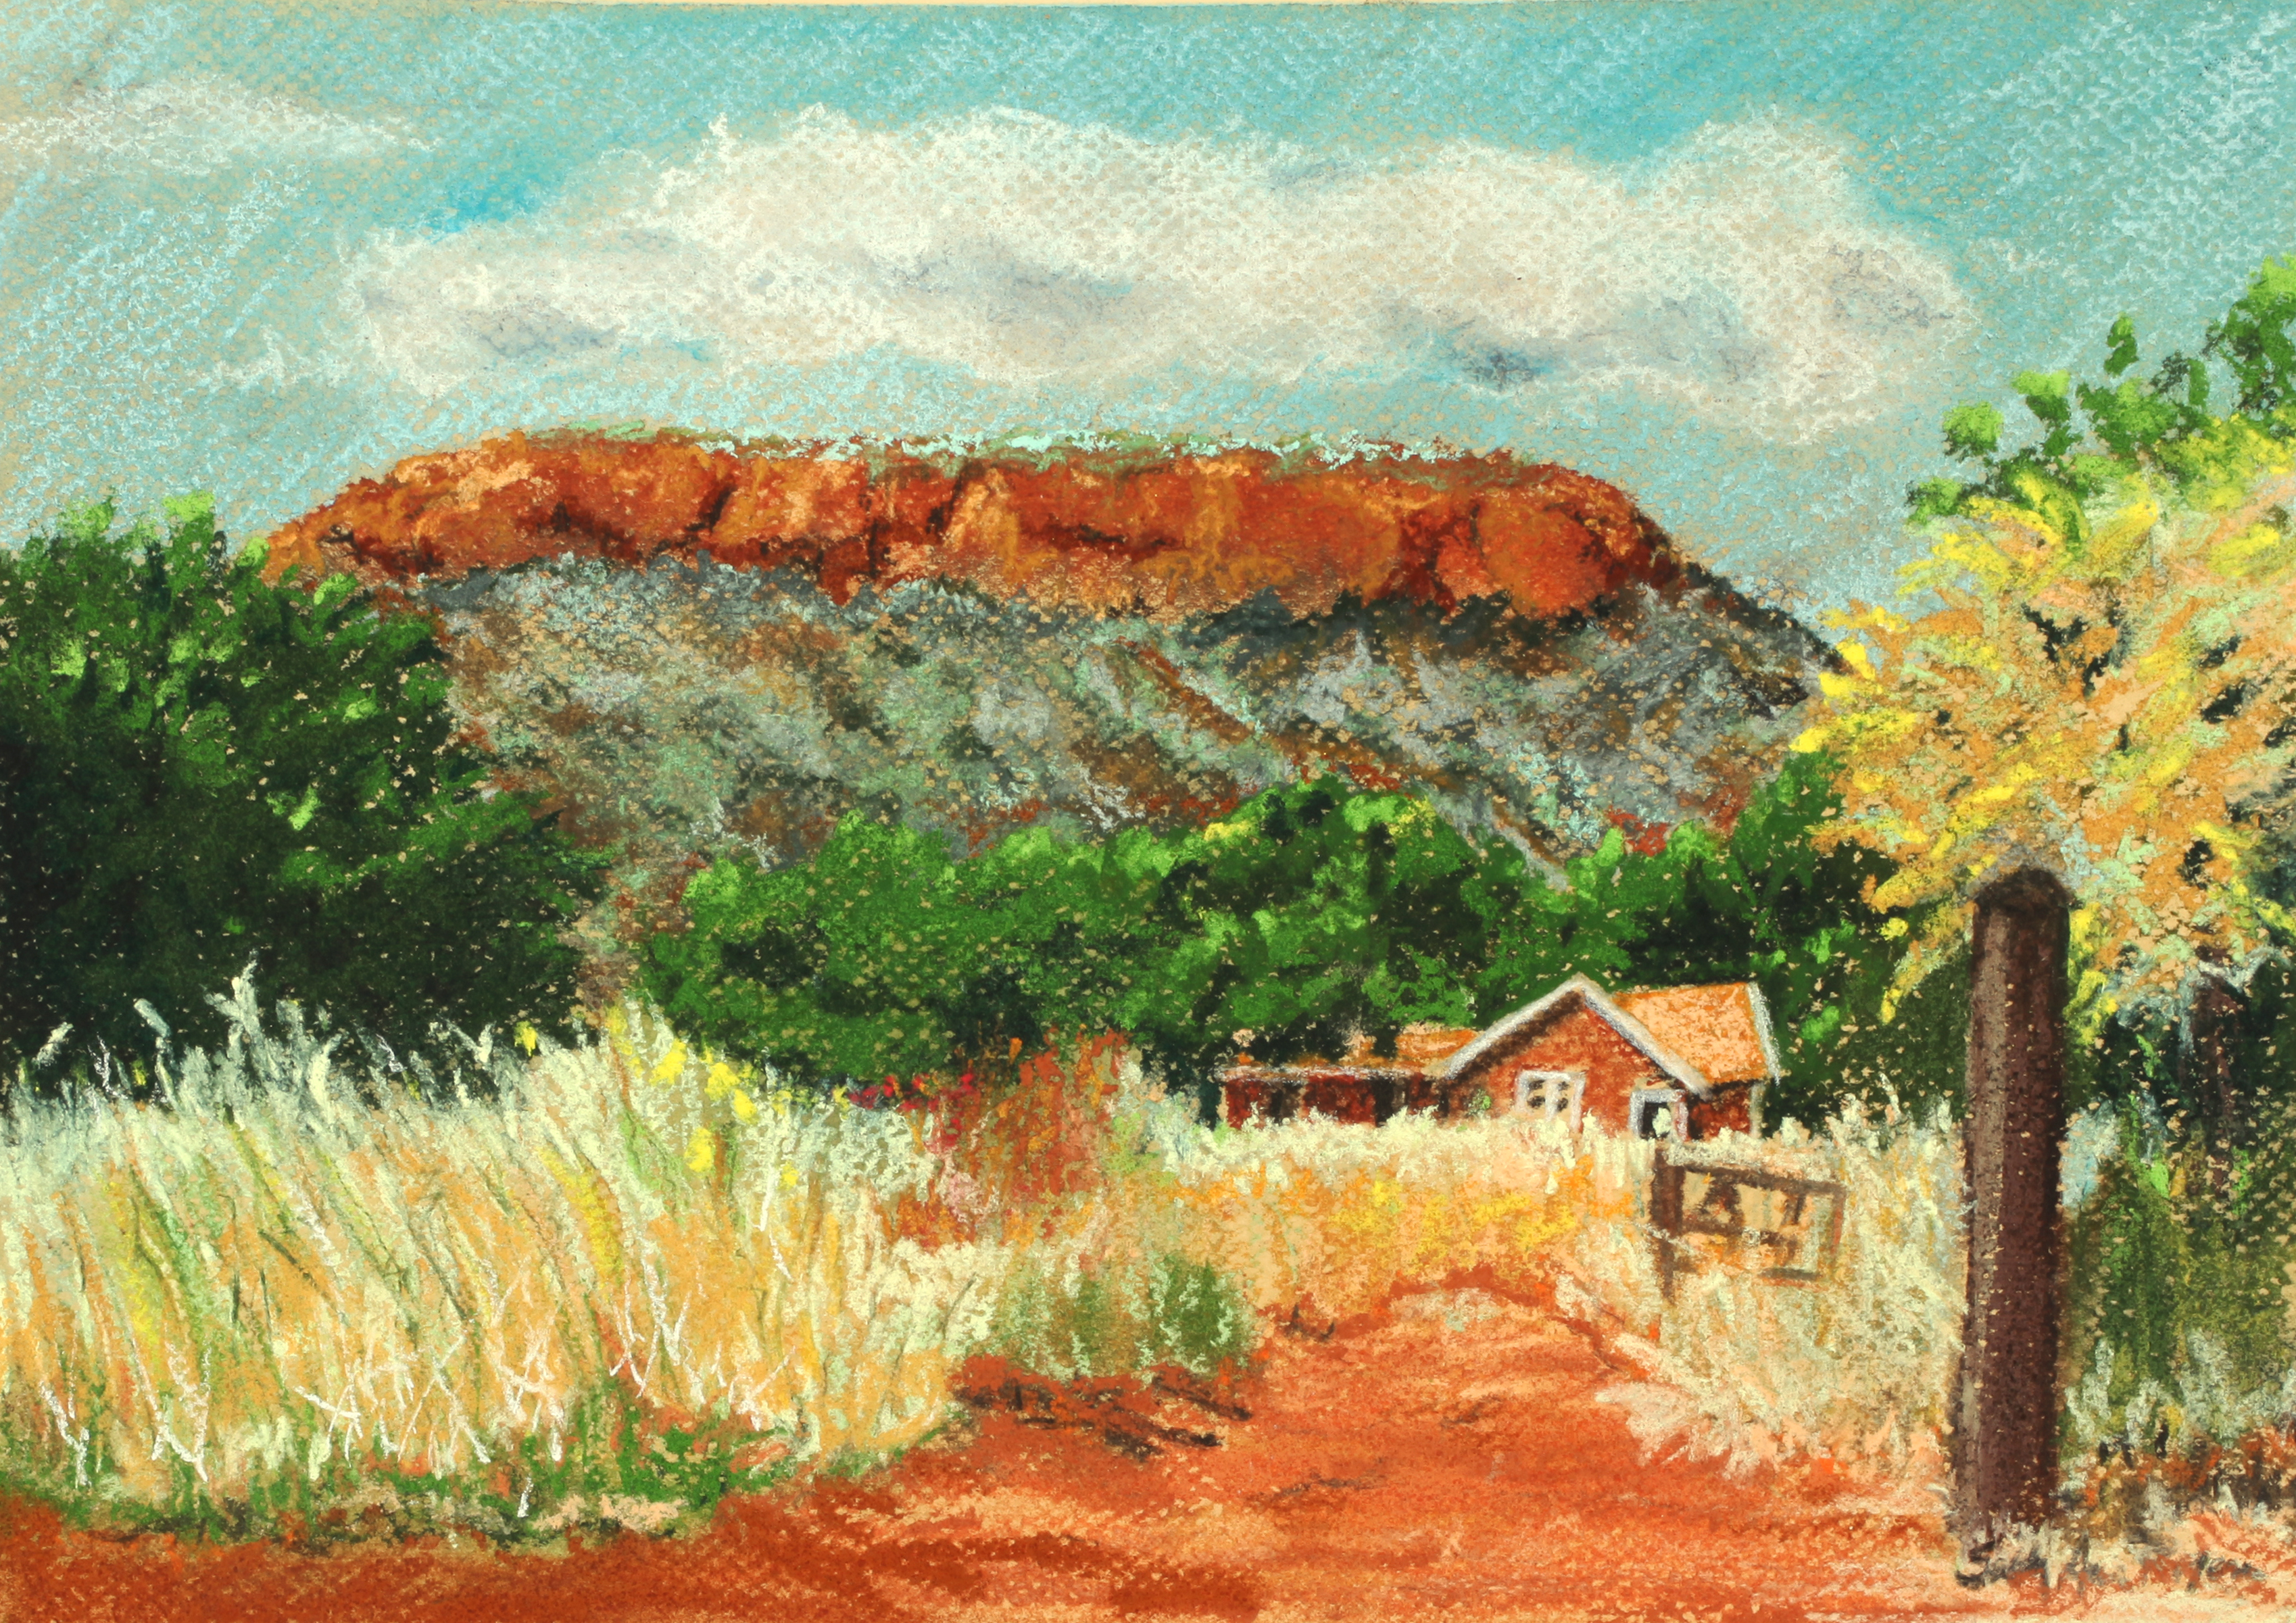 Pastel of a house in South Africa with a mountain in the background